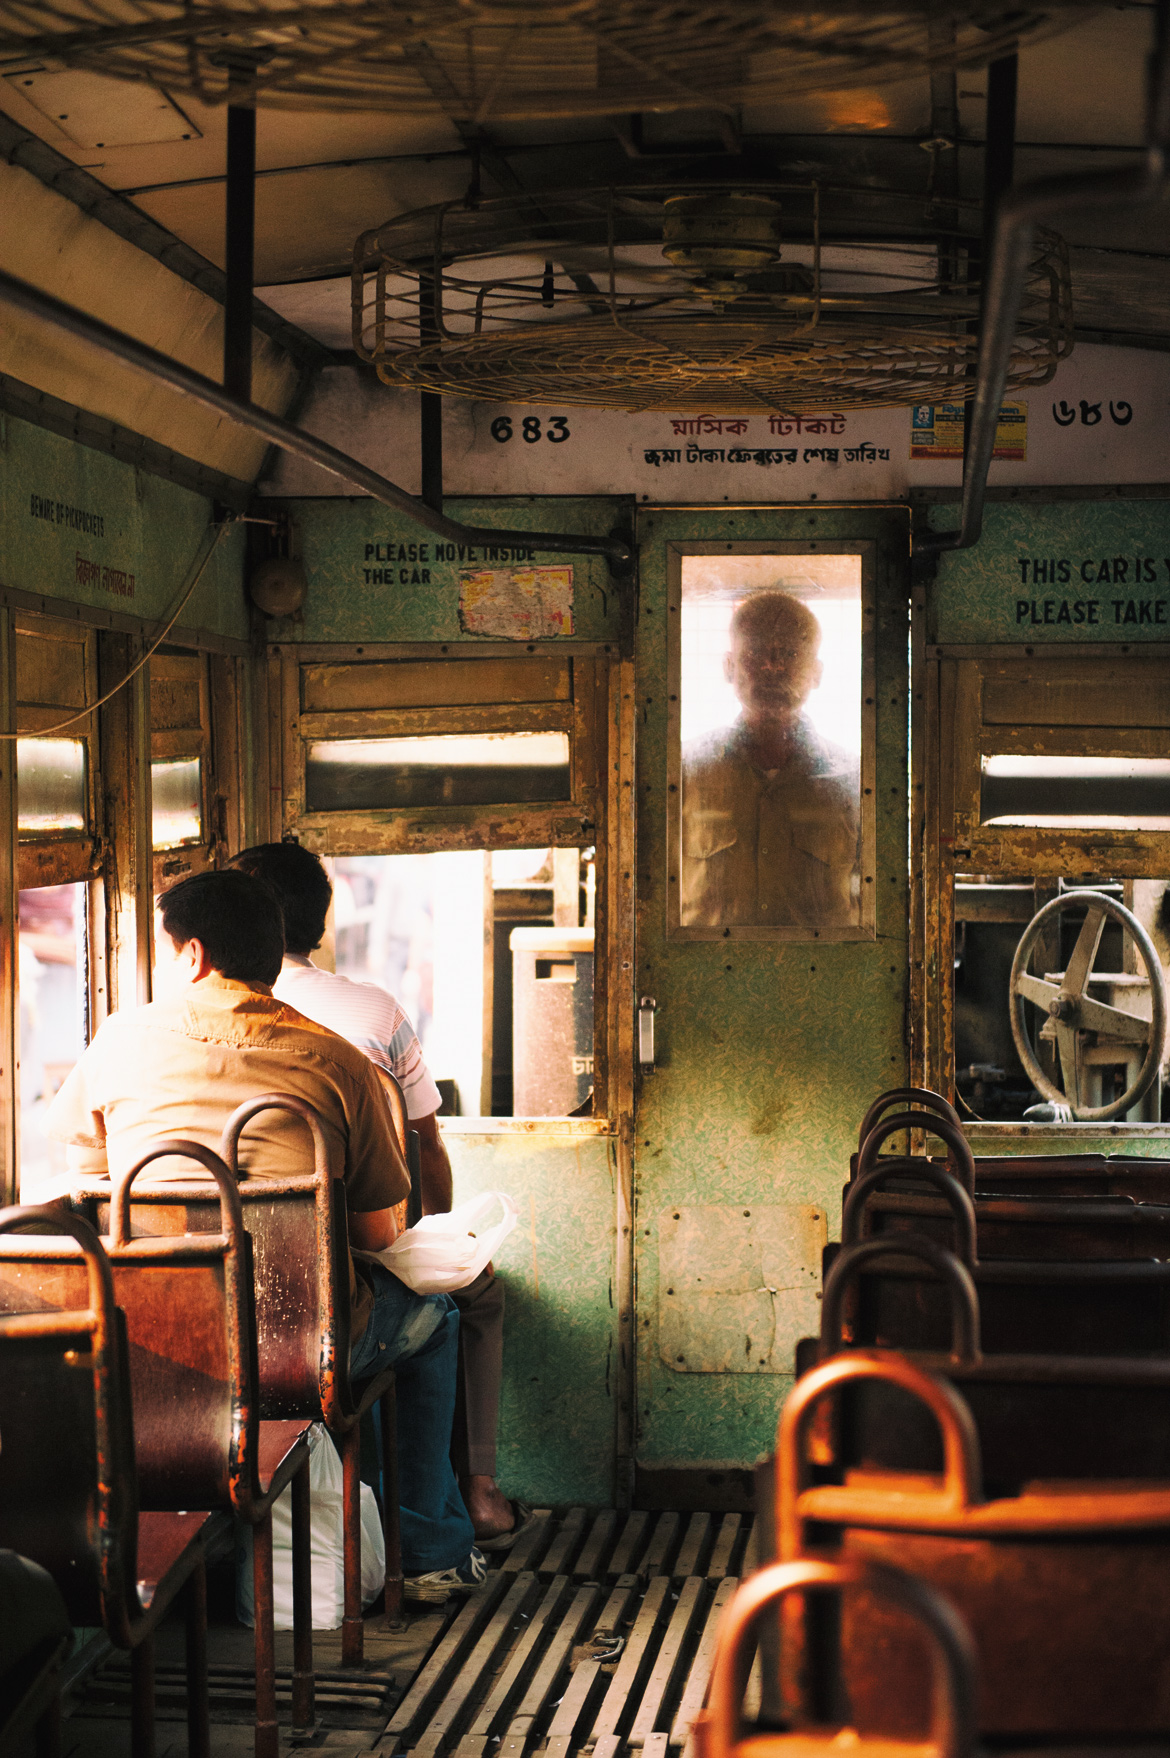 The atmosphere inside the tram is almost poetic